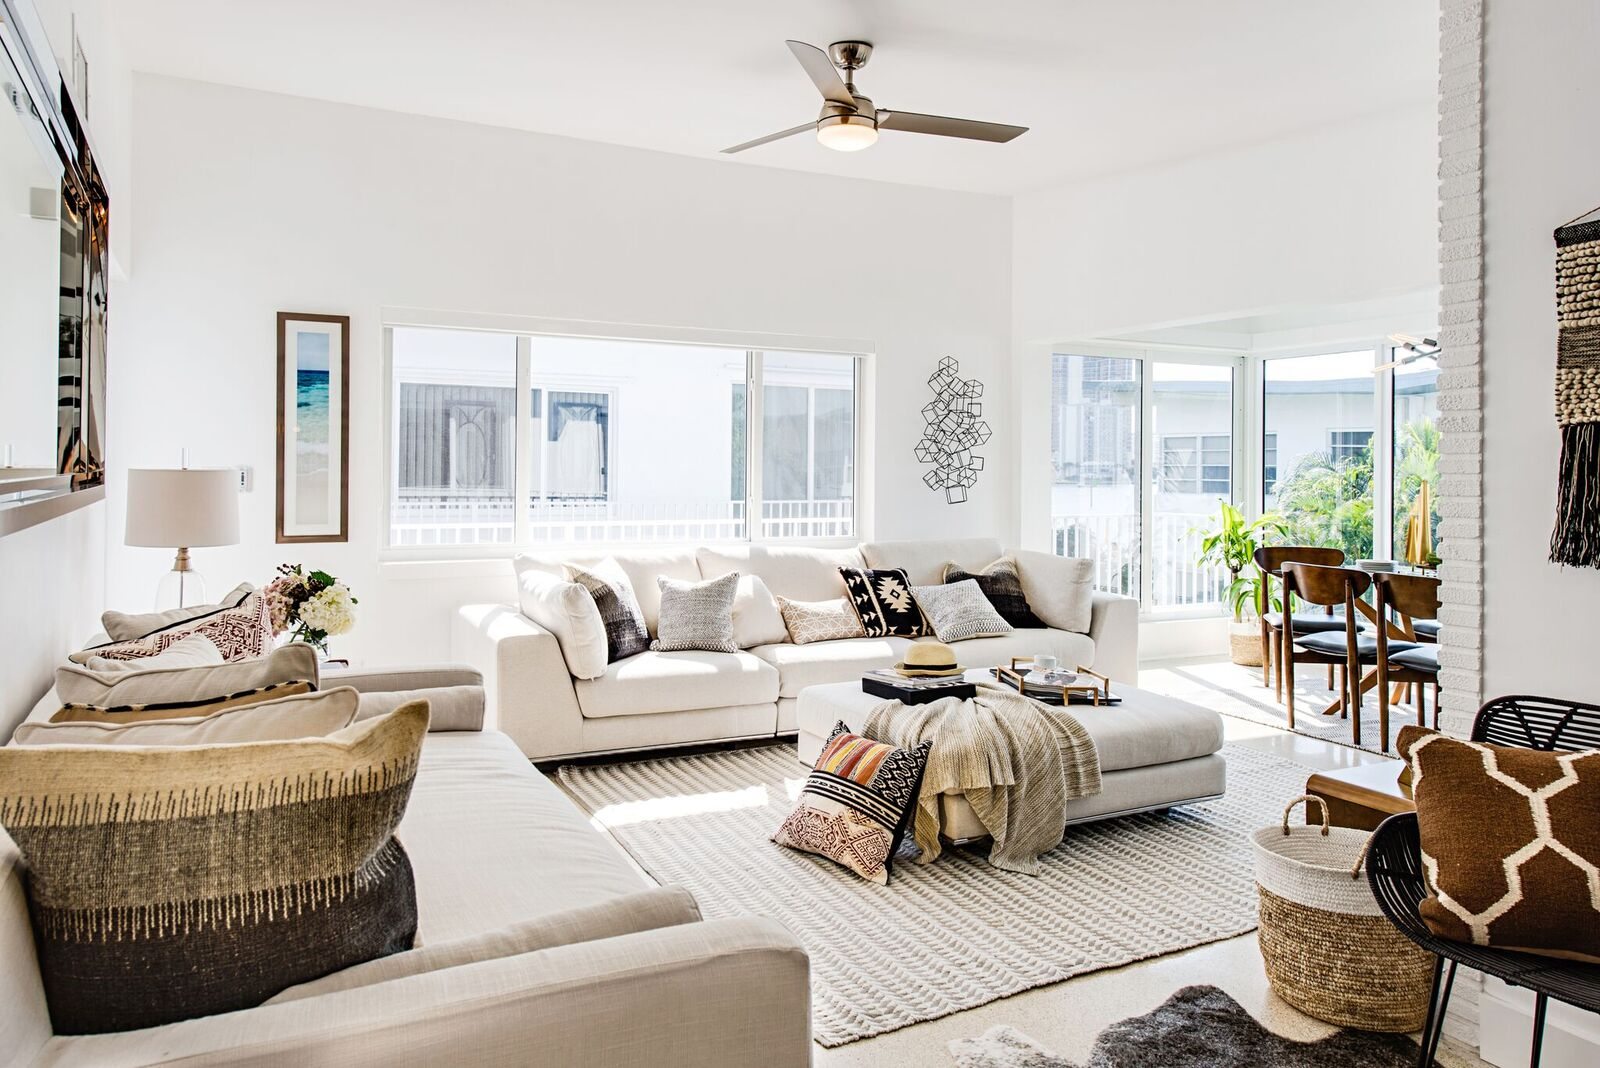 21 Easy, Unexpected Living Room Decorating Ideas | Real Simple